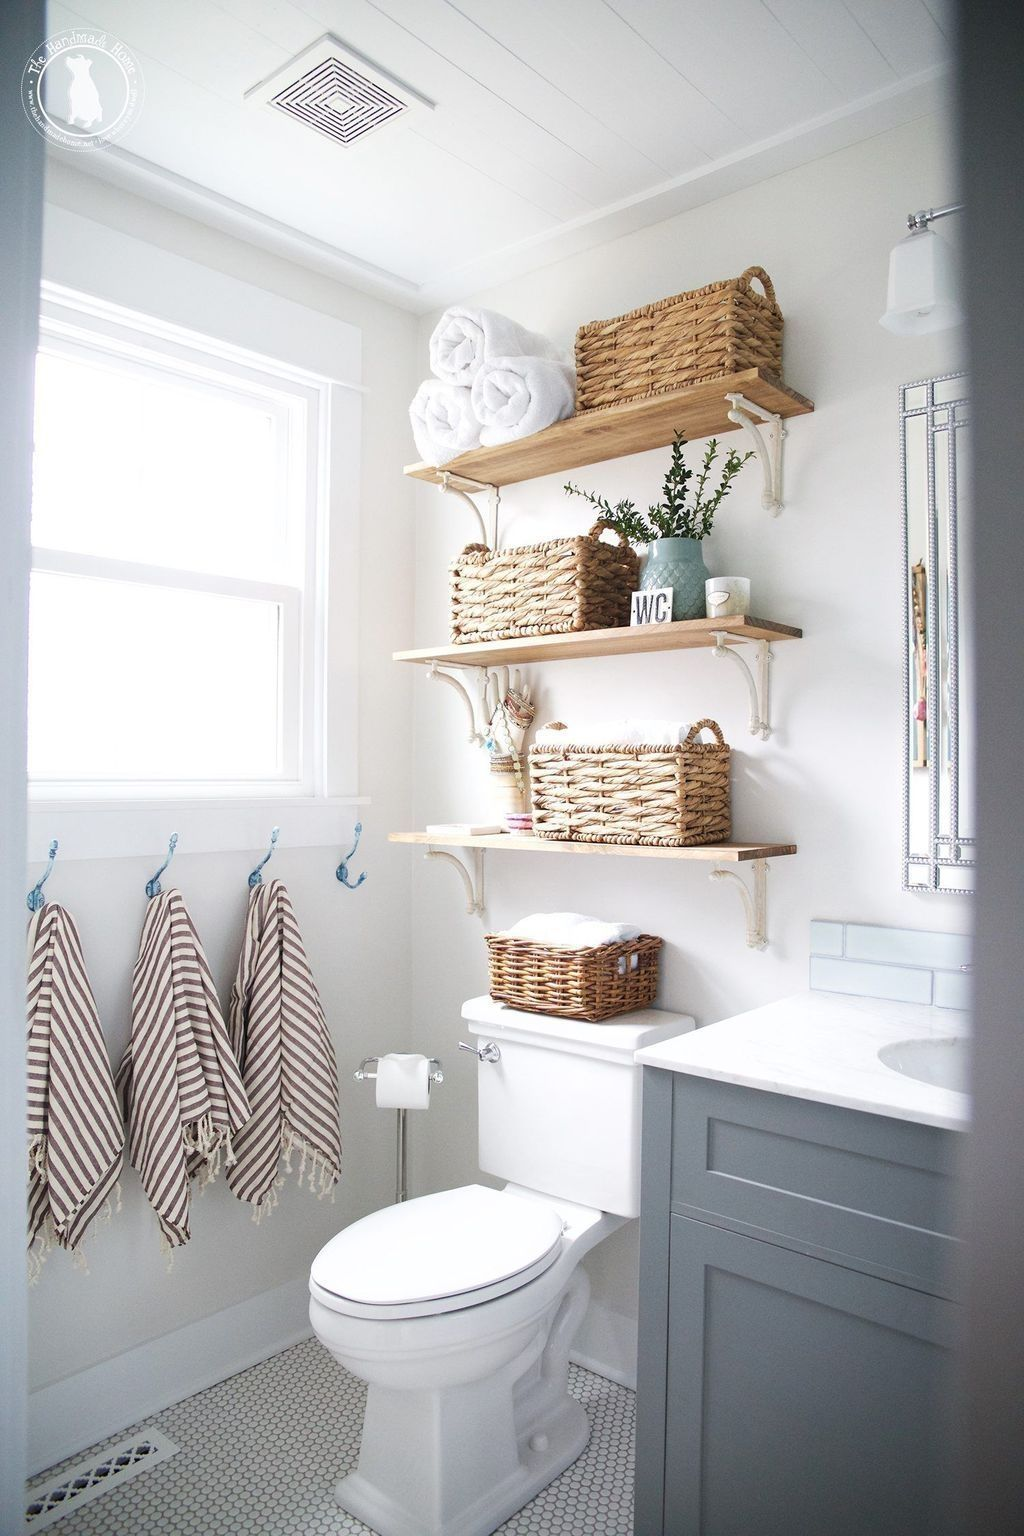 41 Enchanting Bathroom Storage Ideas For Your Organization Zyhomy In 2020 Small Bathroom Decor Small Bathroom Bathrooms Remodel